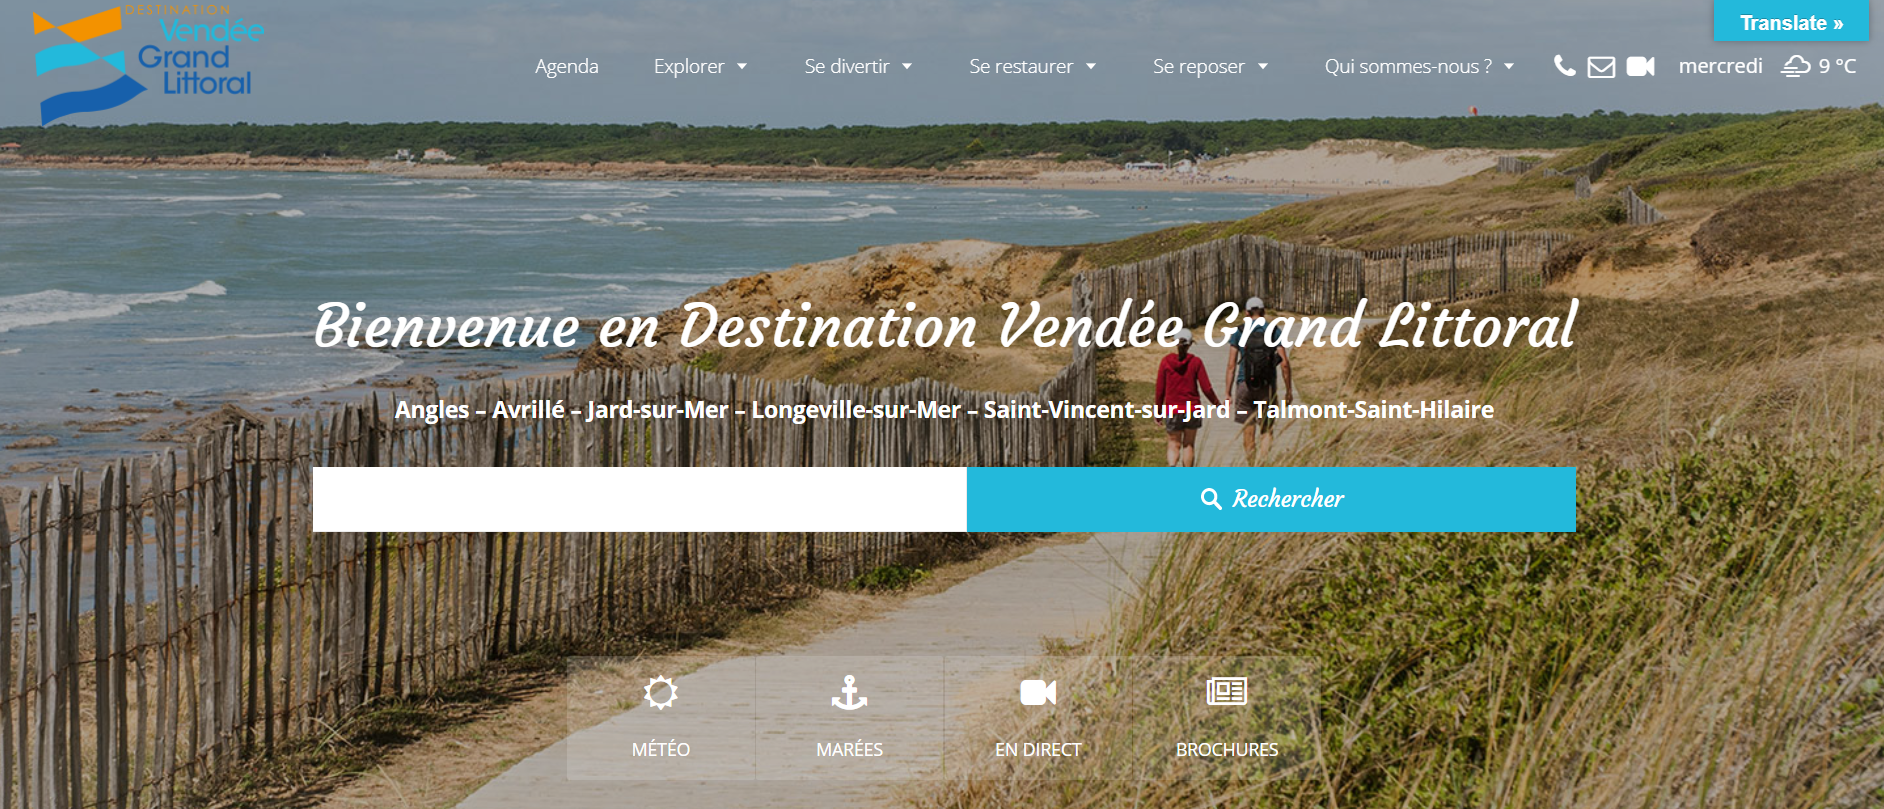 Office de tourisme destination vend e grand littoral - Thollon les memises office du tourisme ...